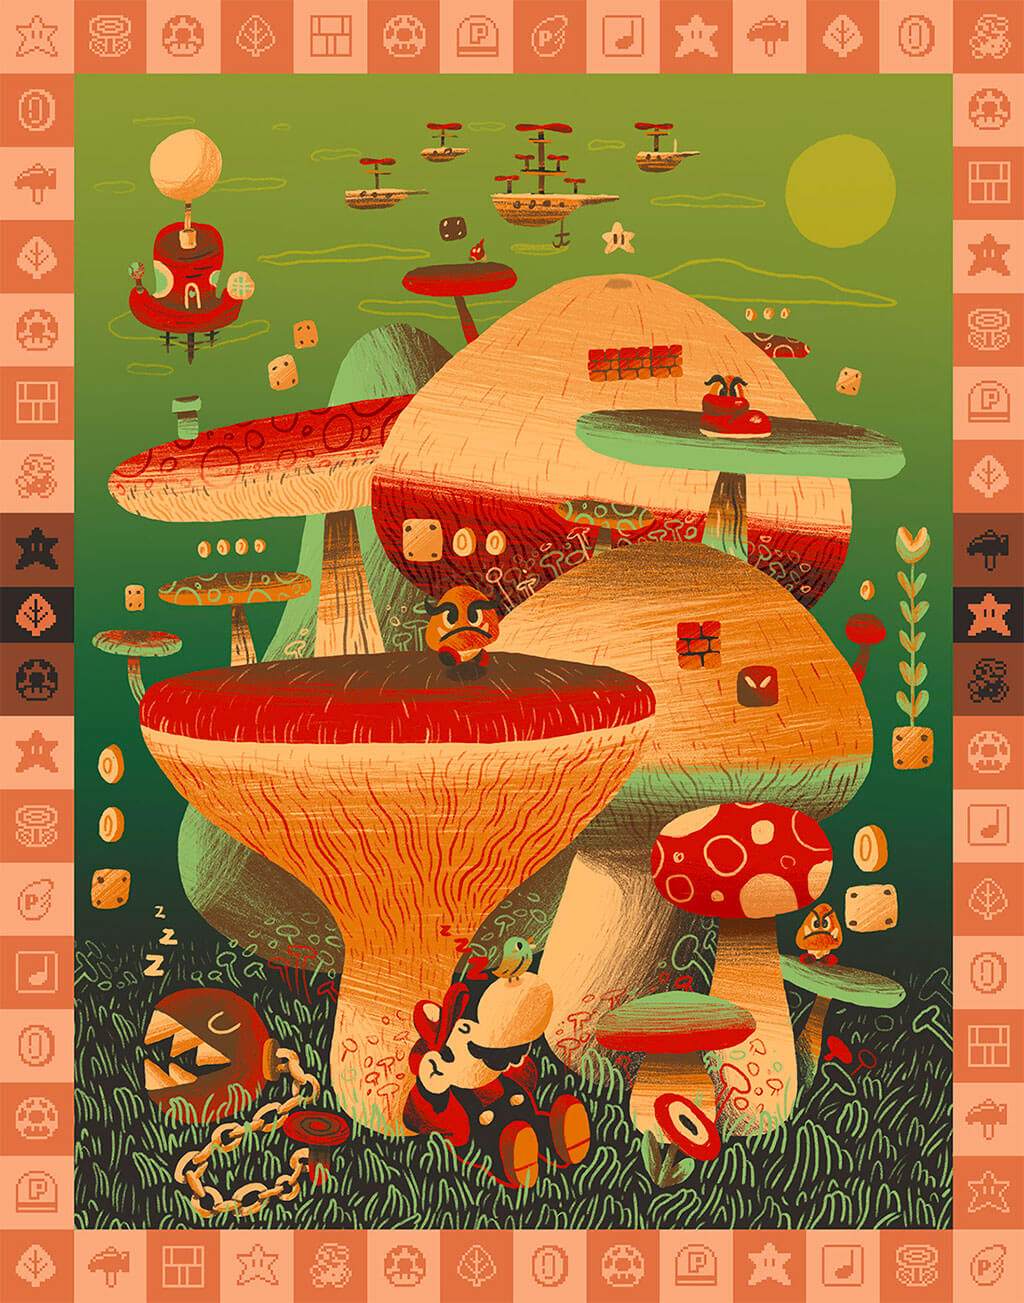 Mario Fan Art by Scott Balmer